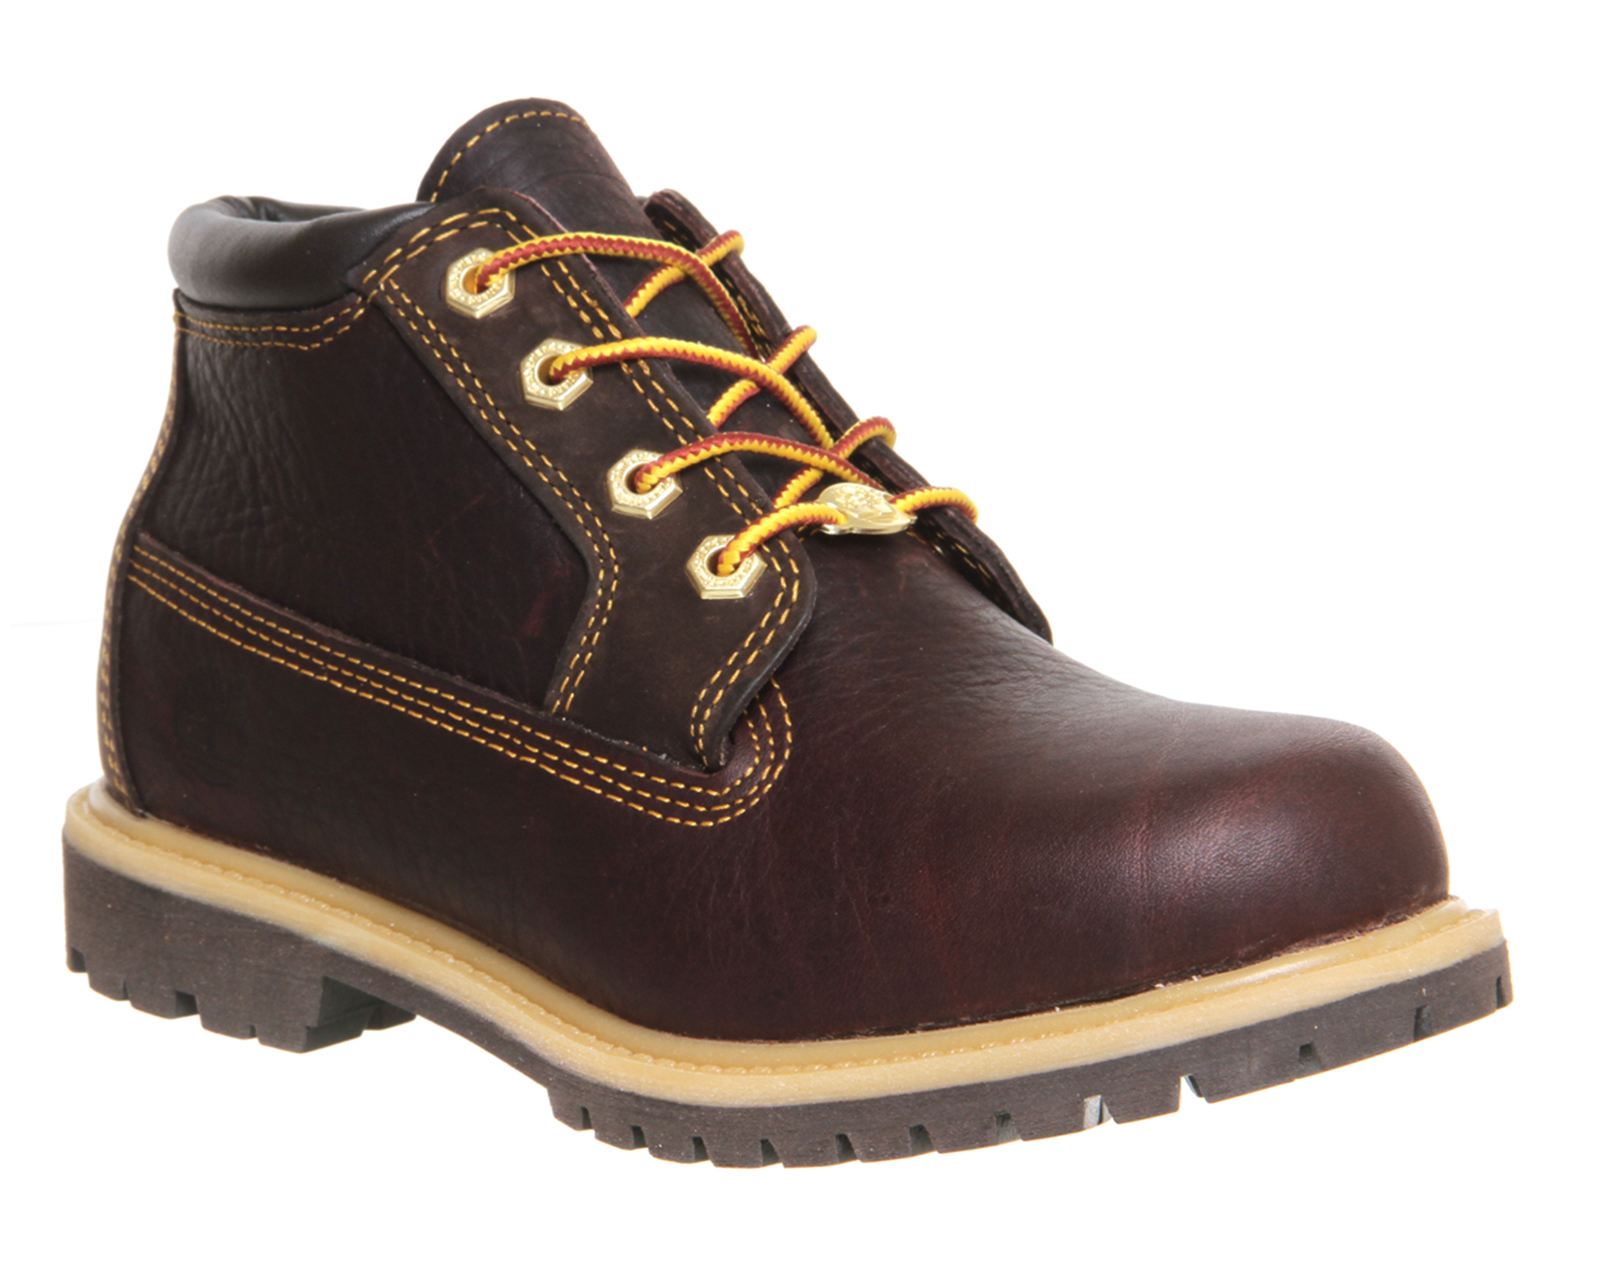 Timberland Nellie Chukka Double Waterproof Boots in Brown ...